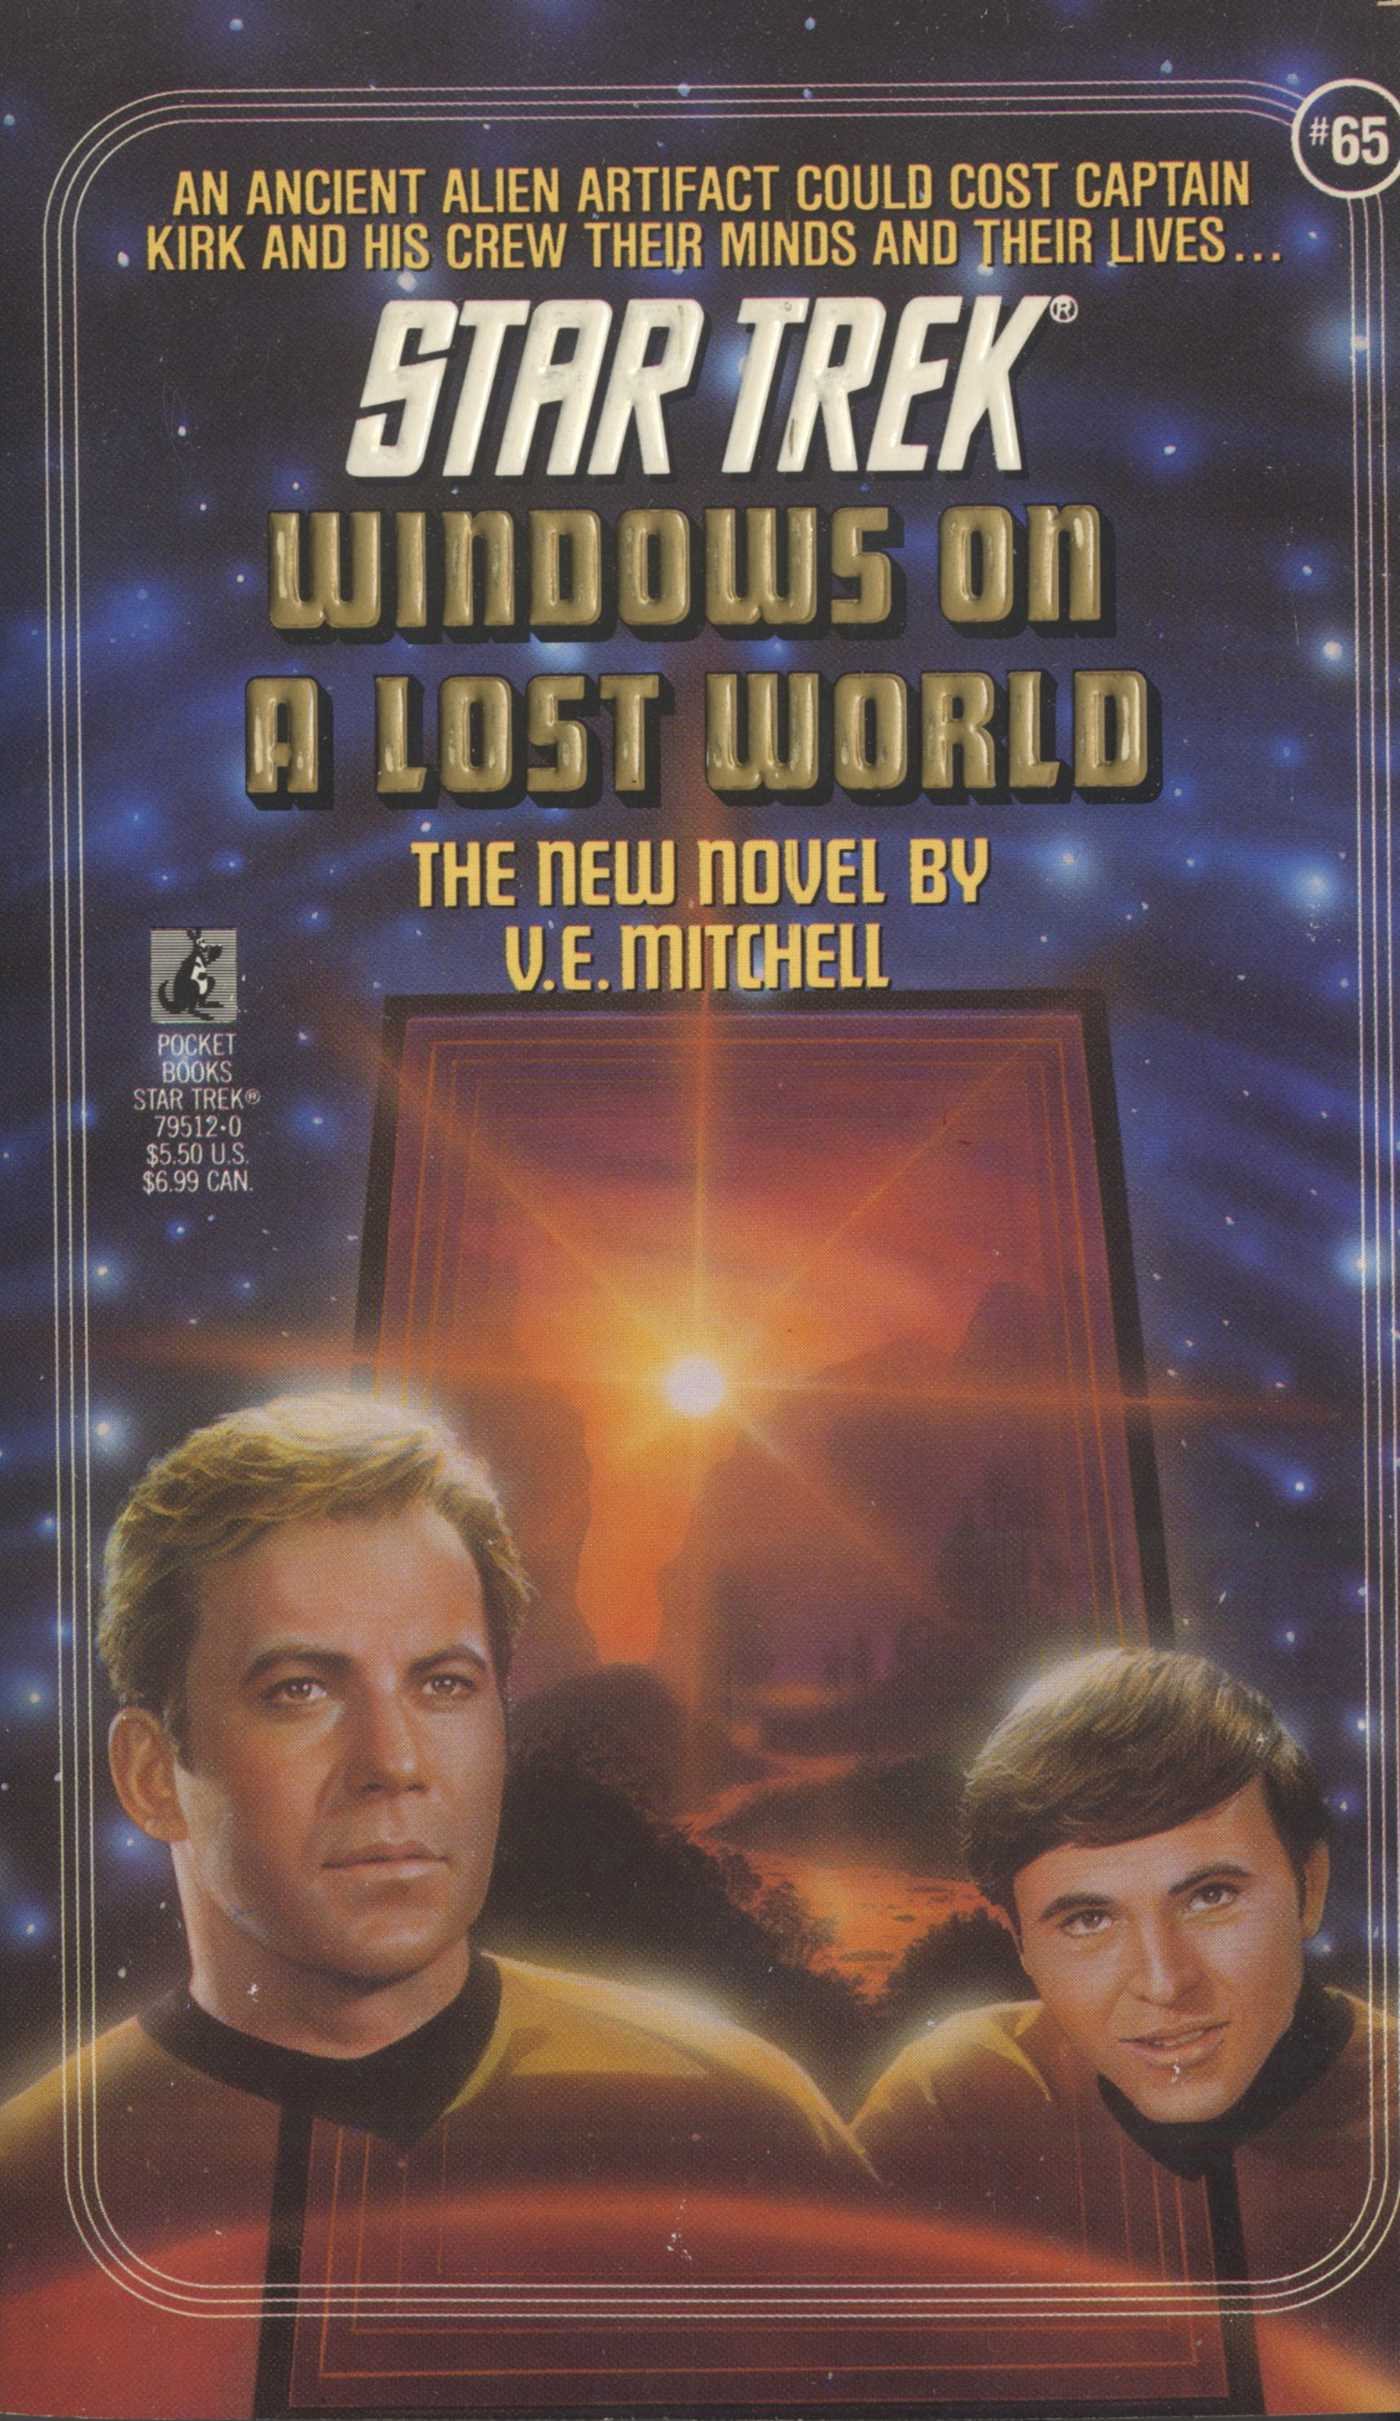 Windows-on-a-lost-world-9780743420167_hr